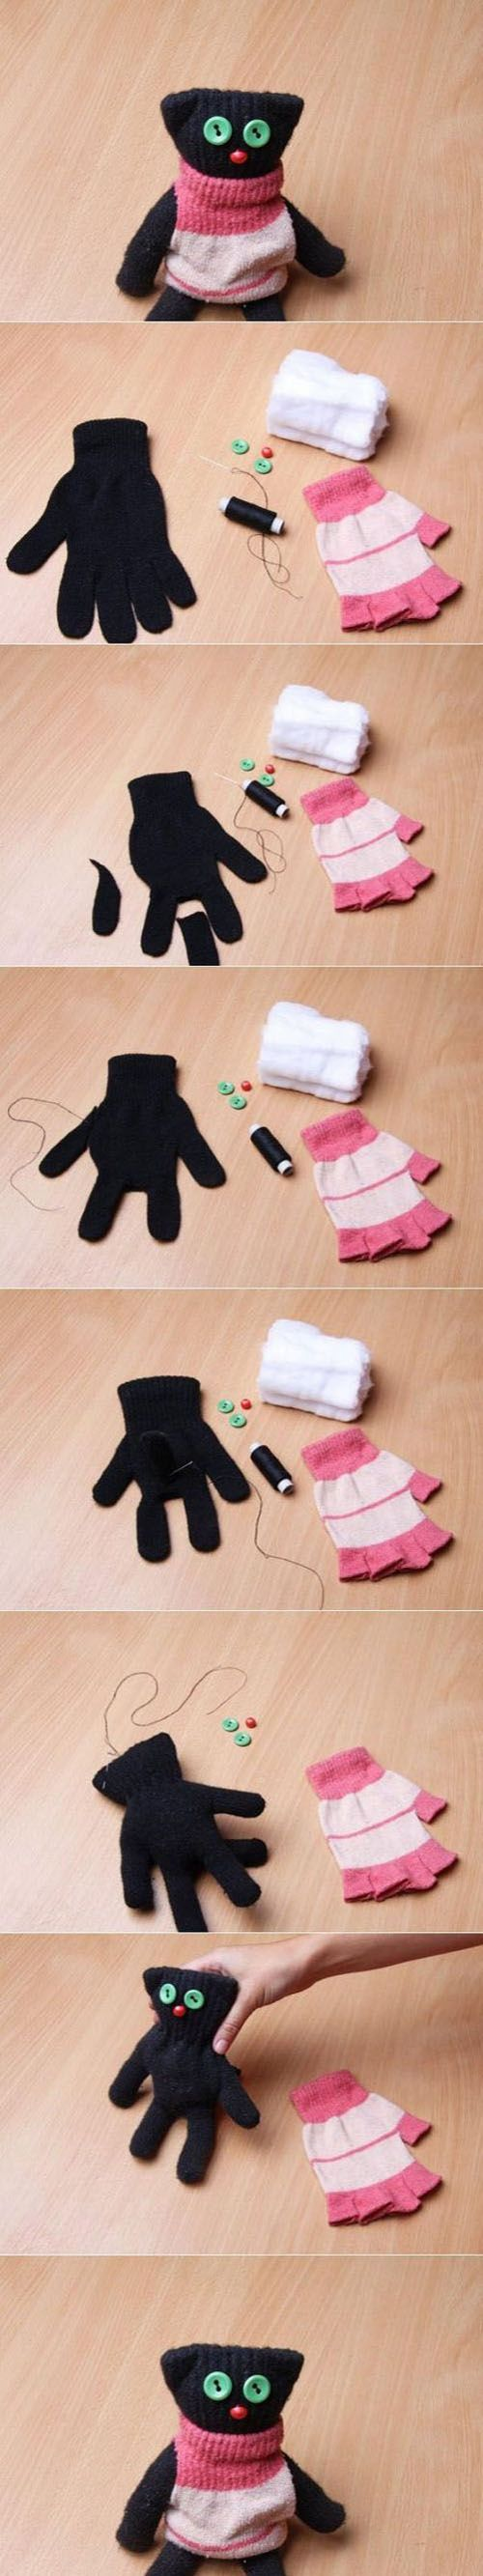 How to make a basic Bear from gloves. Great idea for Jack's RHS gloves.